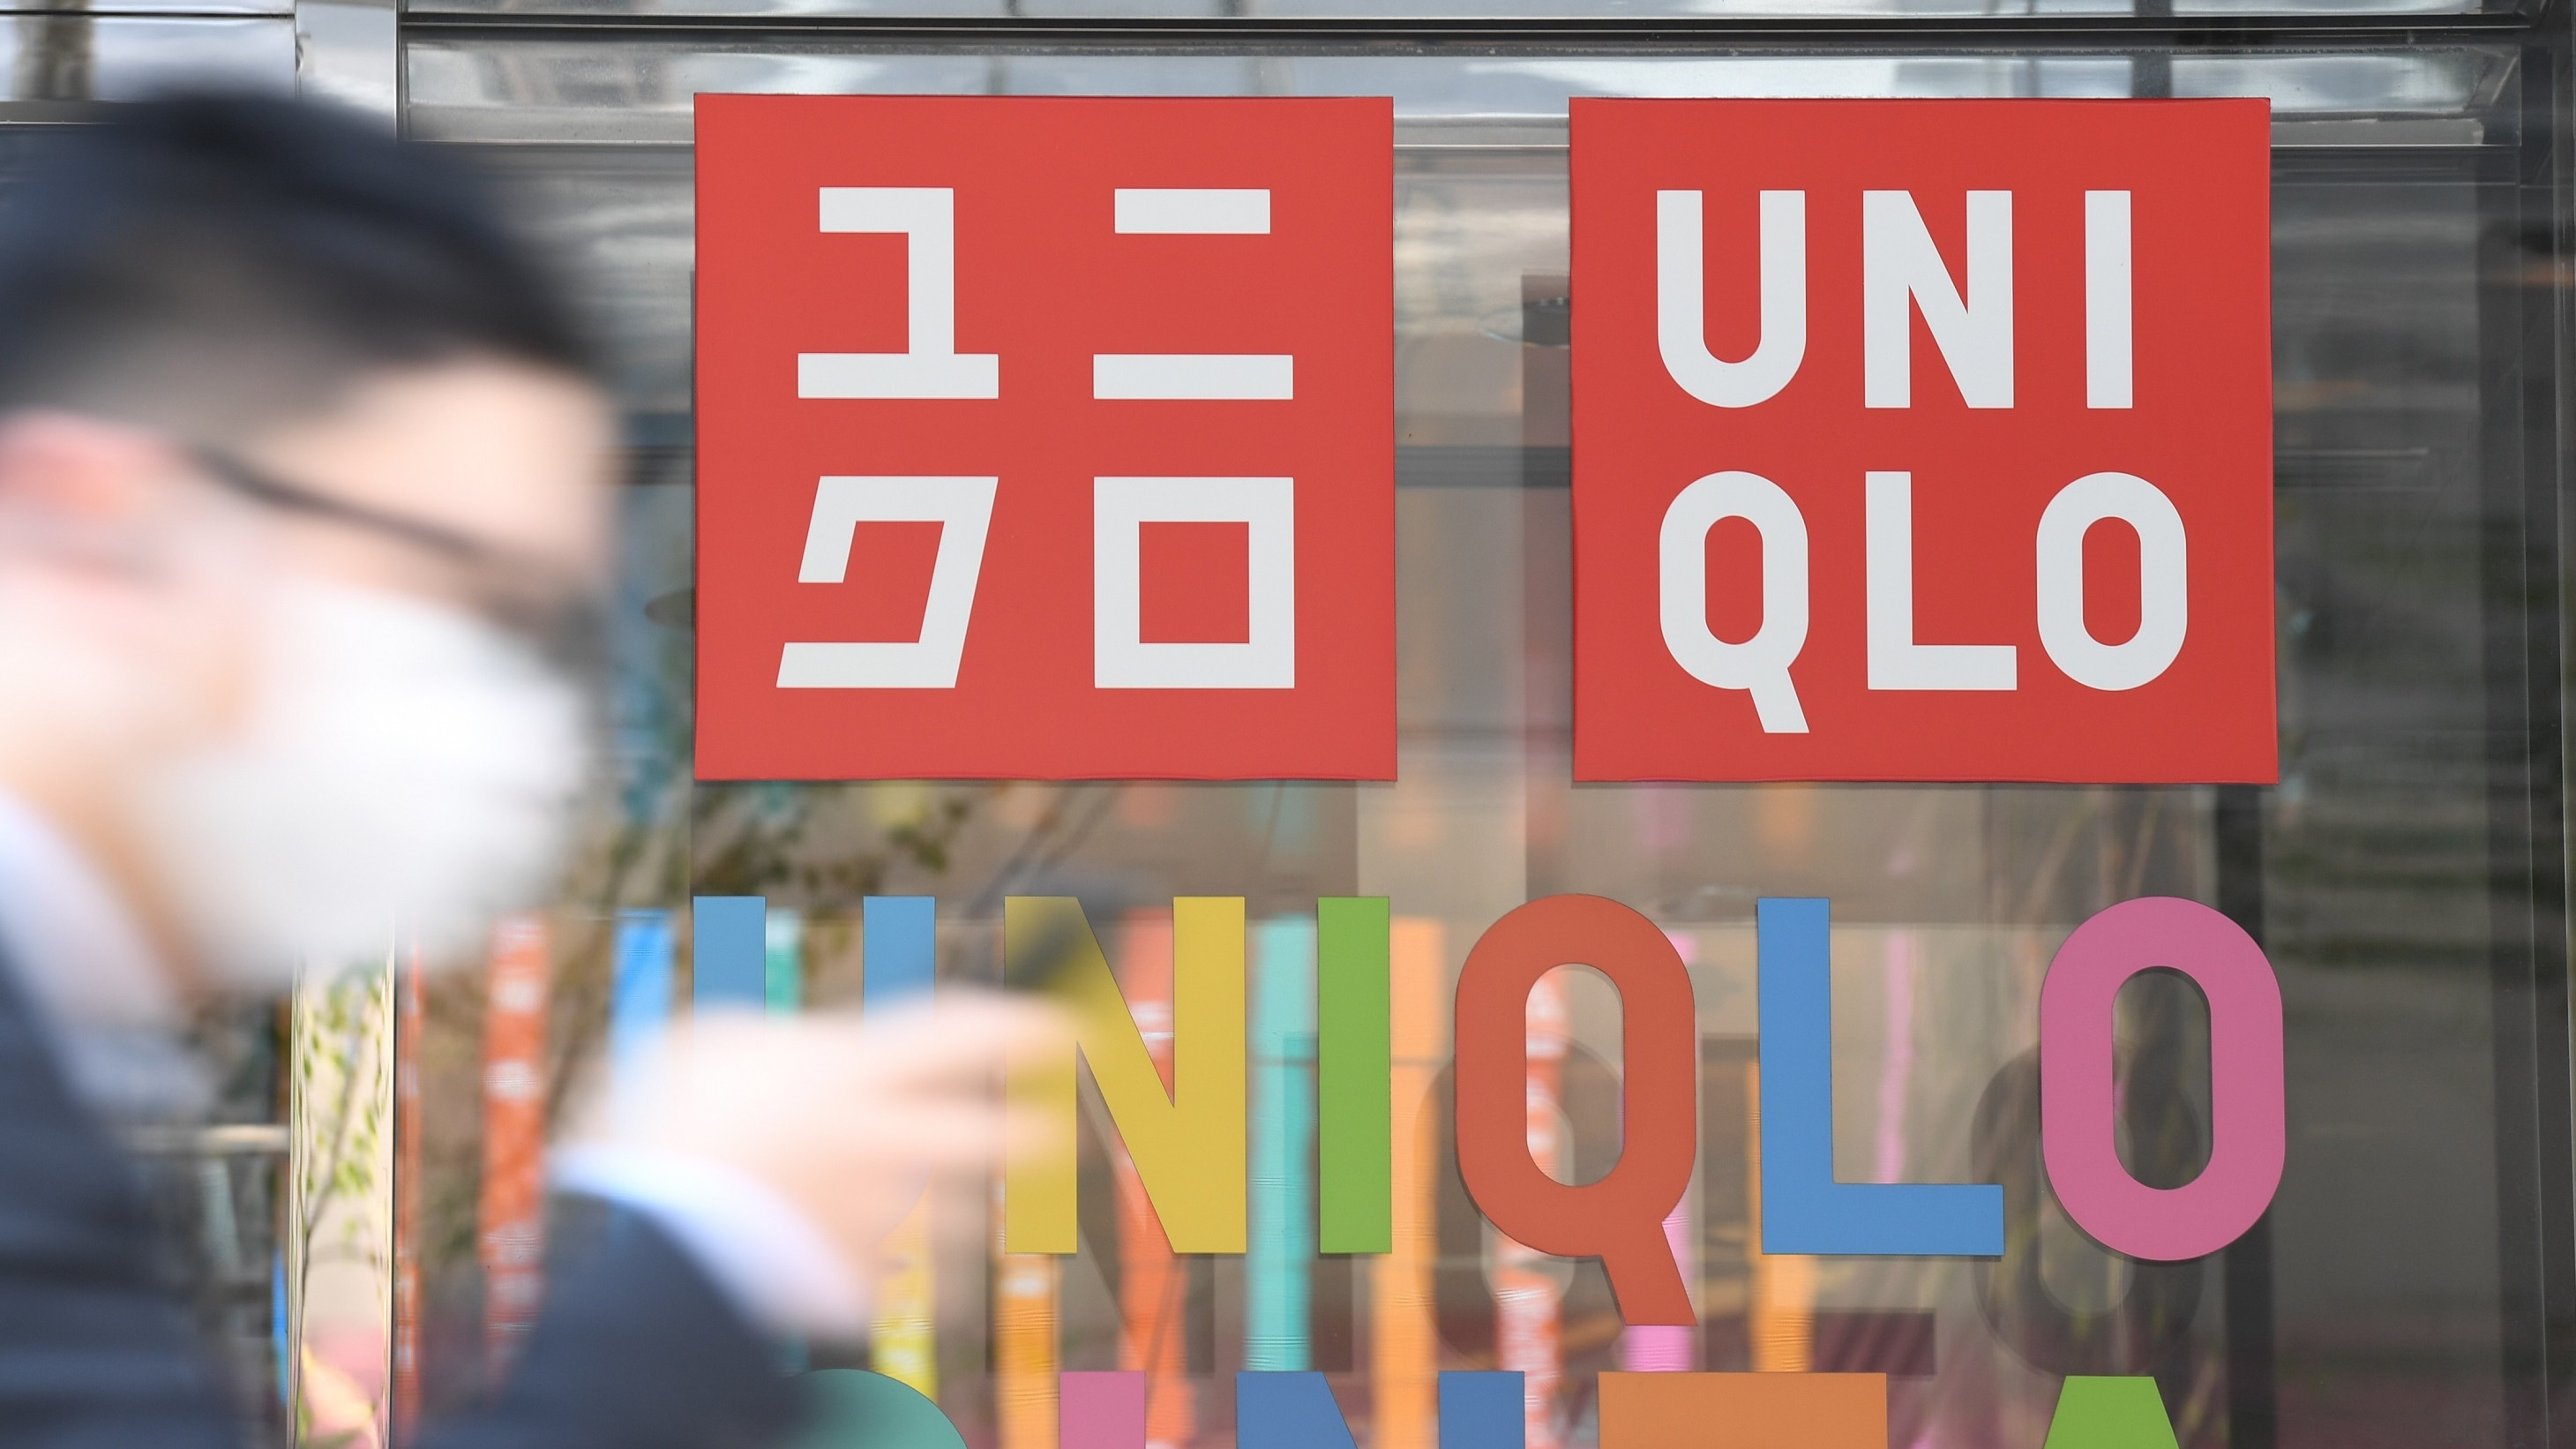 nikkei.com - Staff Writer - Uniqlo to add own payment feature to smartphone app